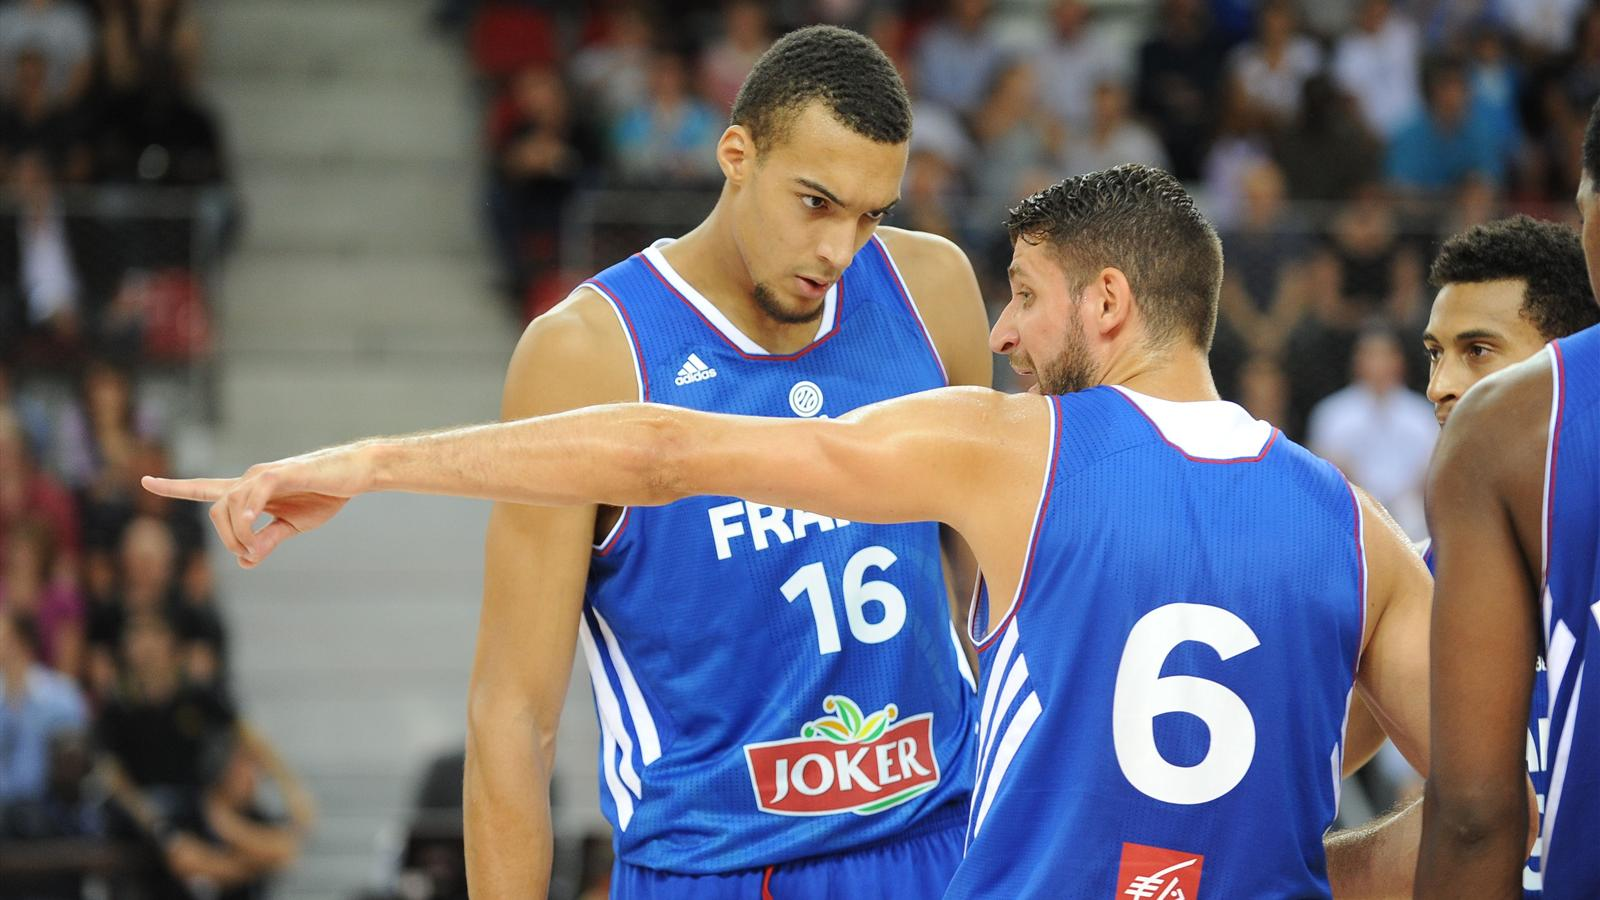 Match Basket France Iran en direct live streaming